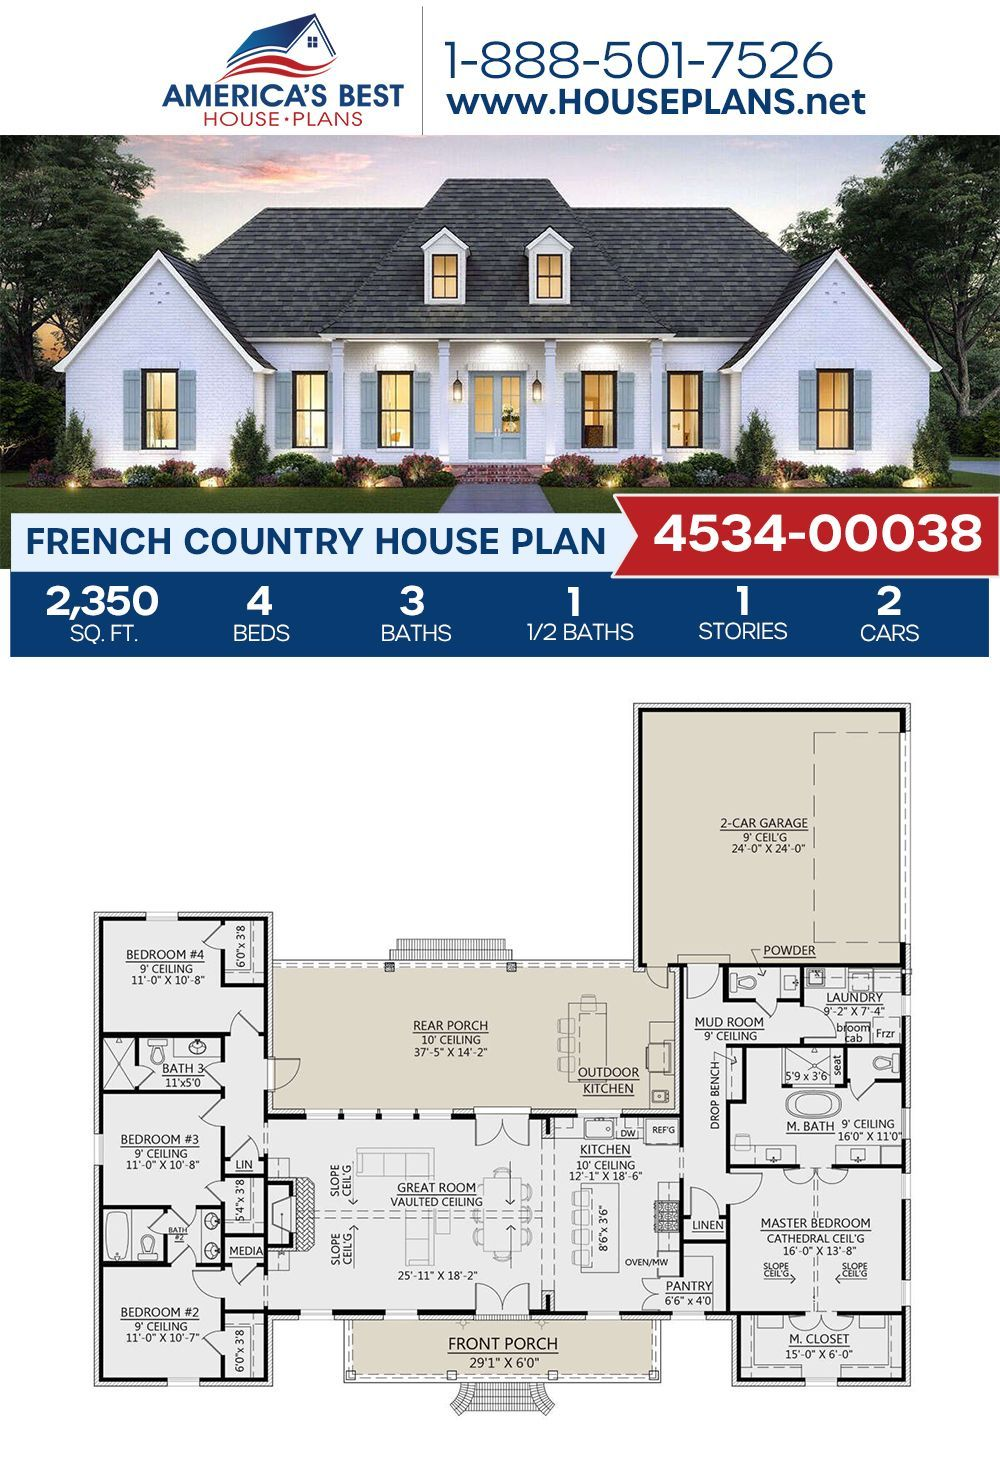 House Plan 4534 00038 French Country Plan 2 350 Square Feet 4 Bedrooms 3 5 Bathrooms Affordable House Plans House Plans Farmhouse French Country House Plans